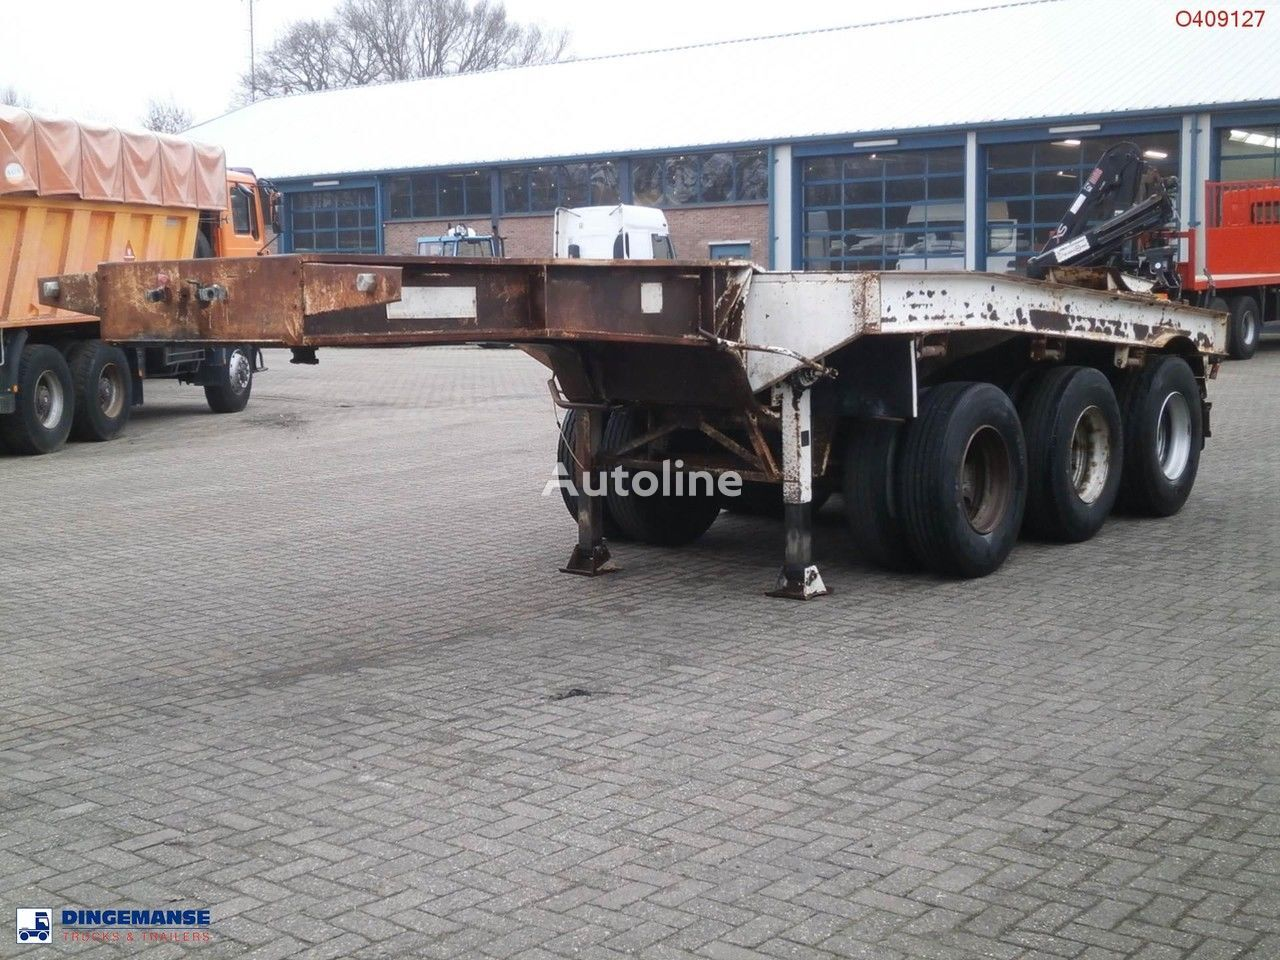 semirimorchio portacontainer TRAYL-ONA 3-axle dolly trailer / 62000 kg